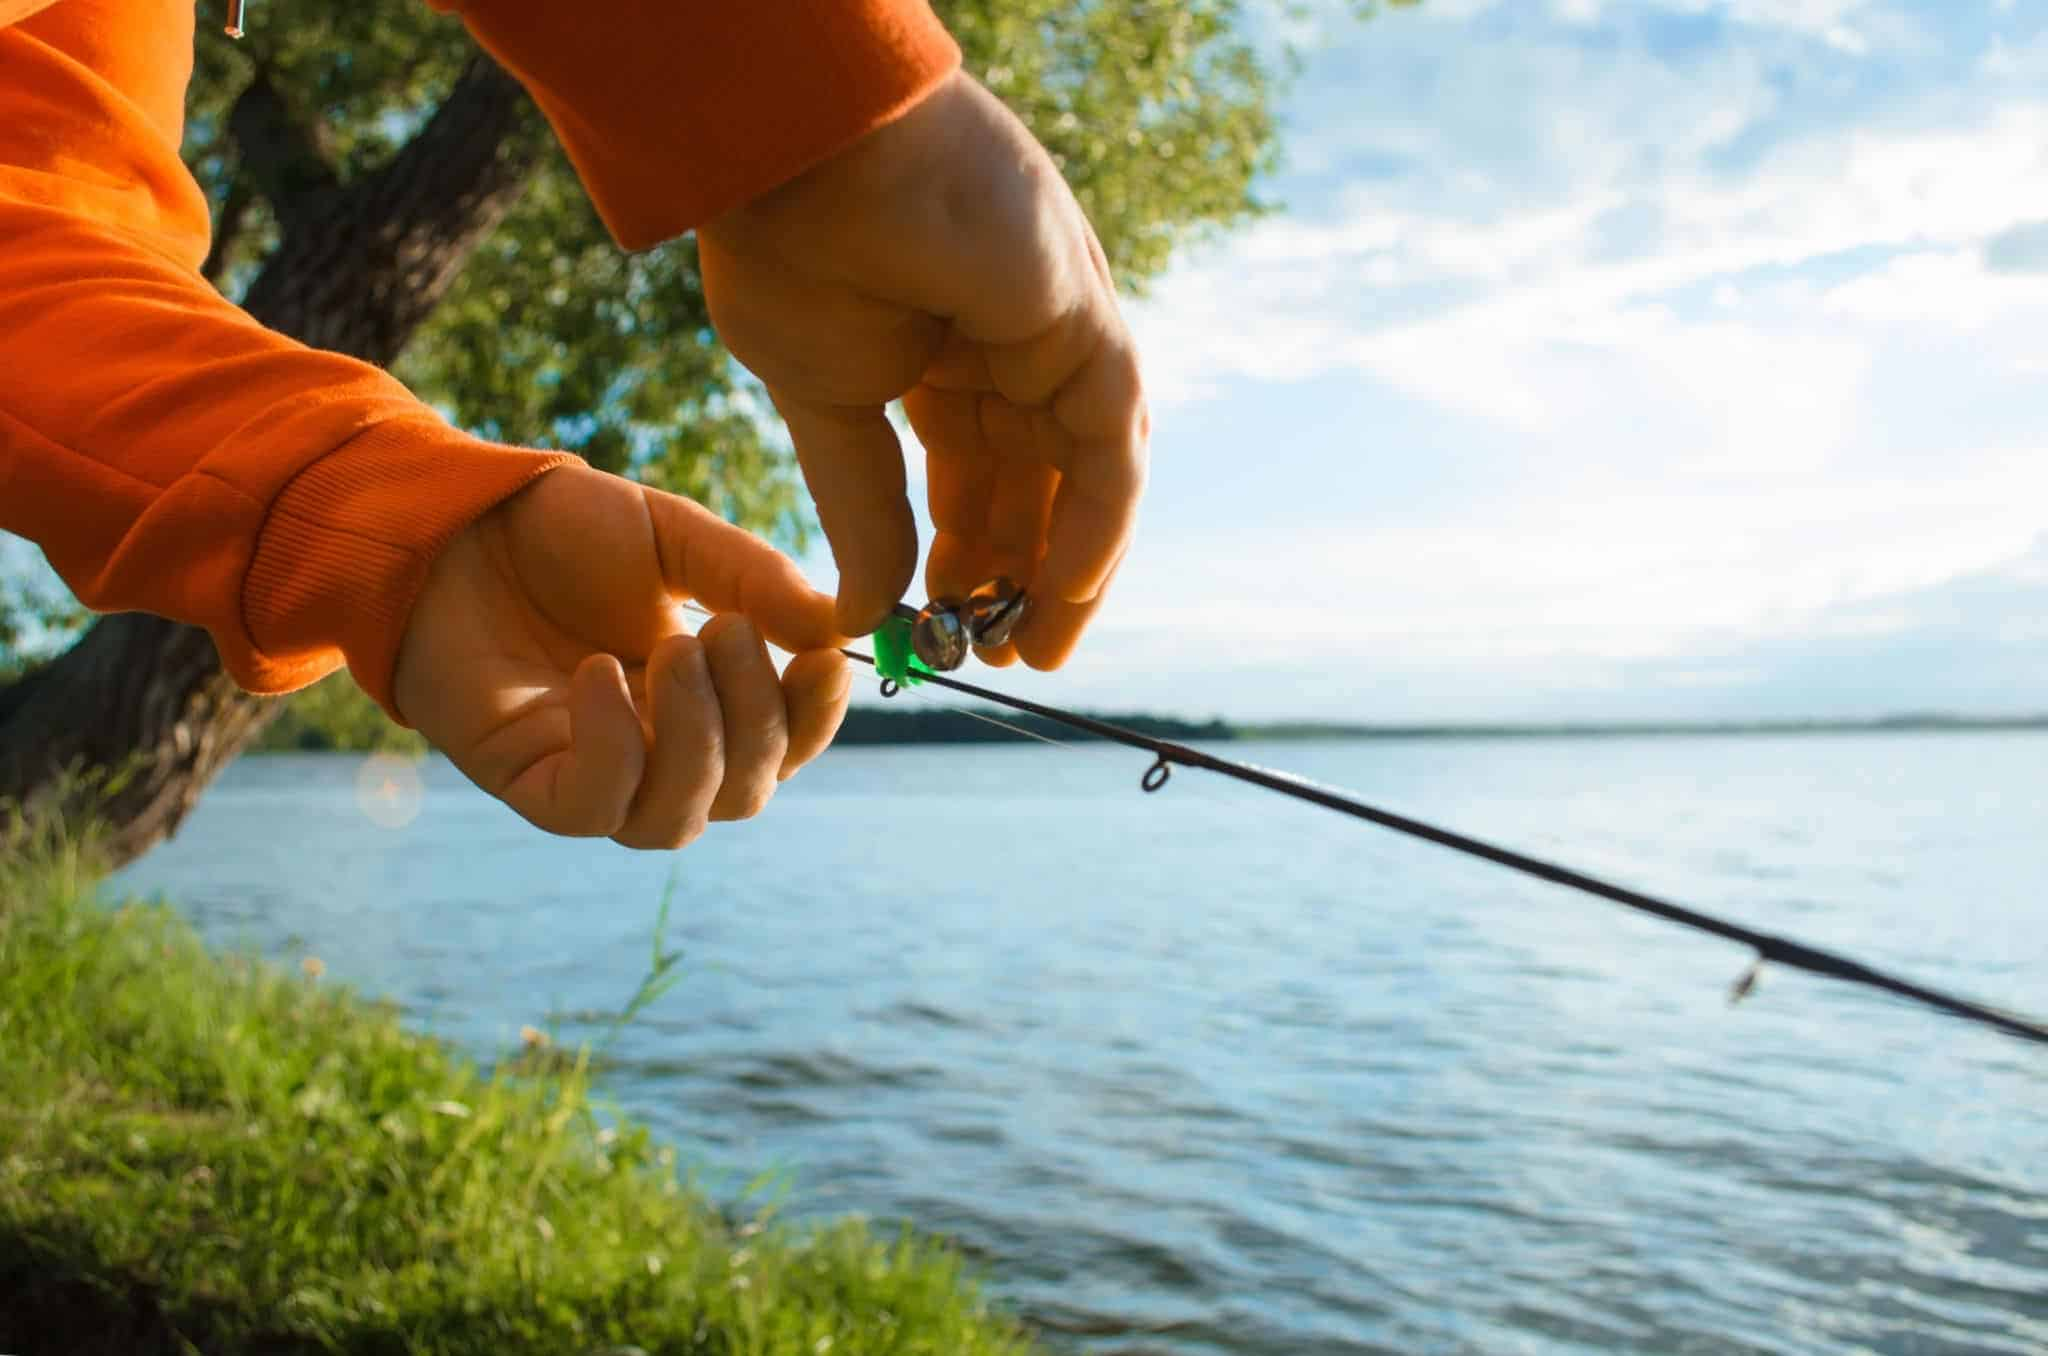 what fish are biting this time of year